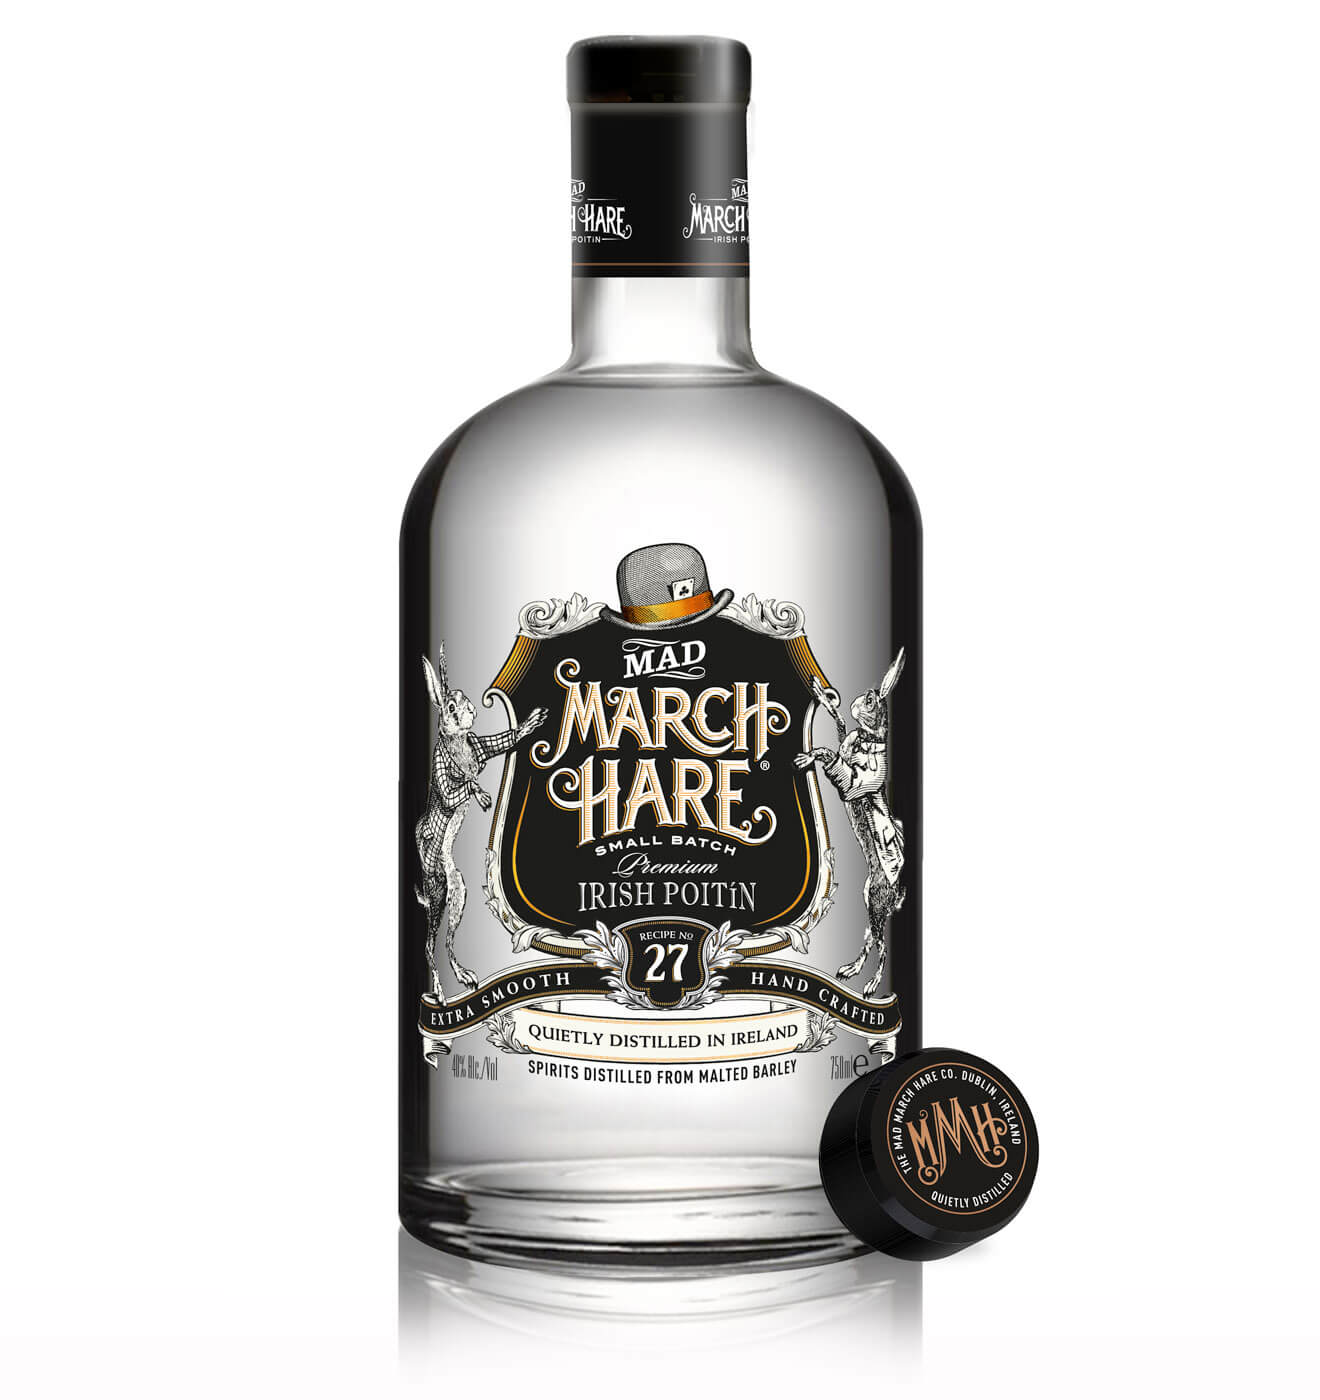 Mad March Hare Poitin Brings the Rich History of Irish Craft Distilling to the U.S.